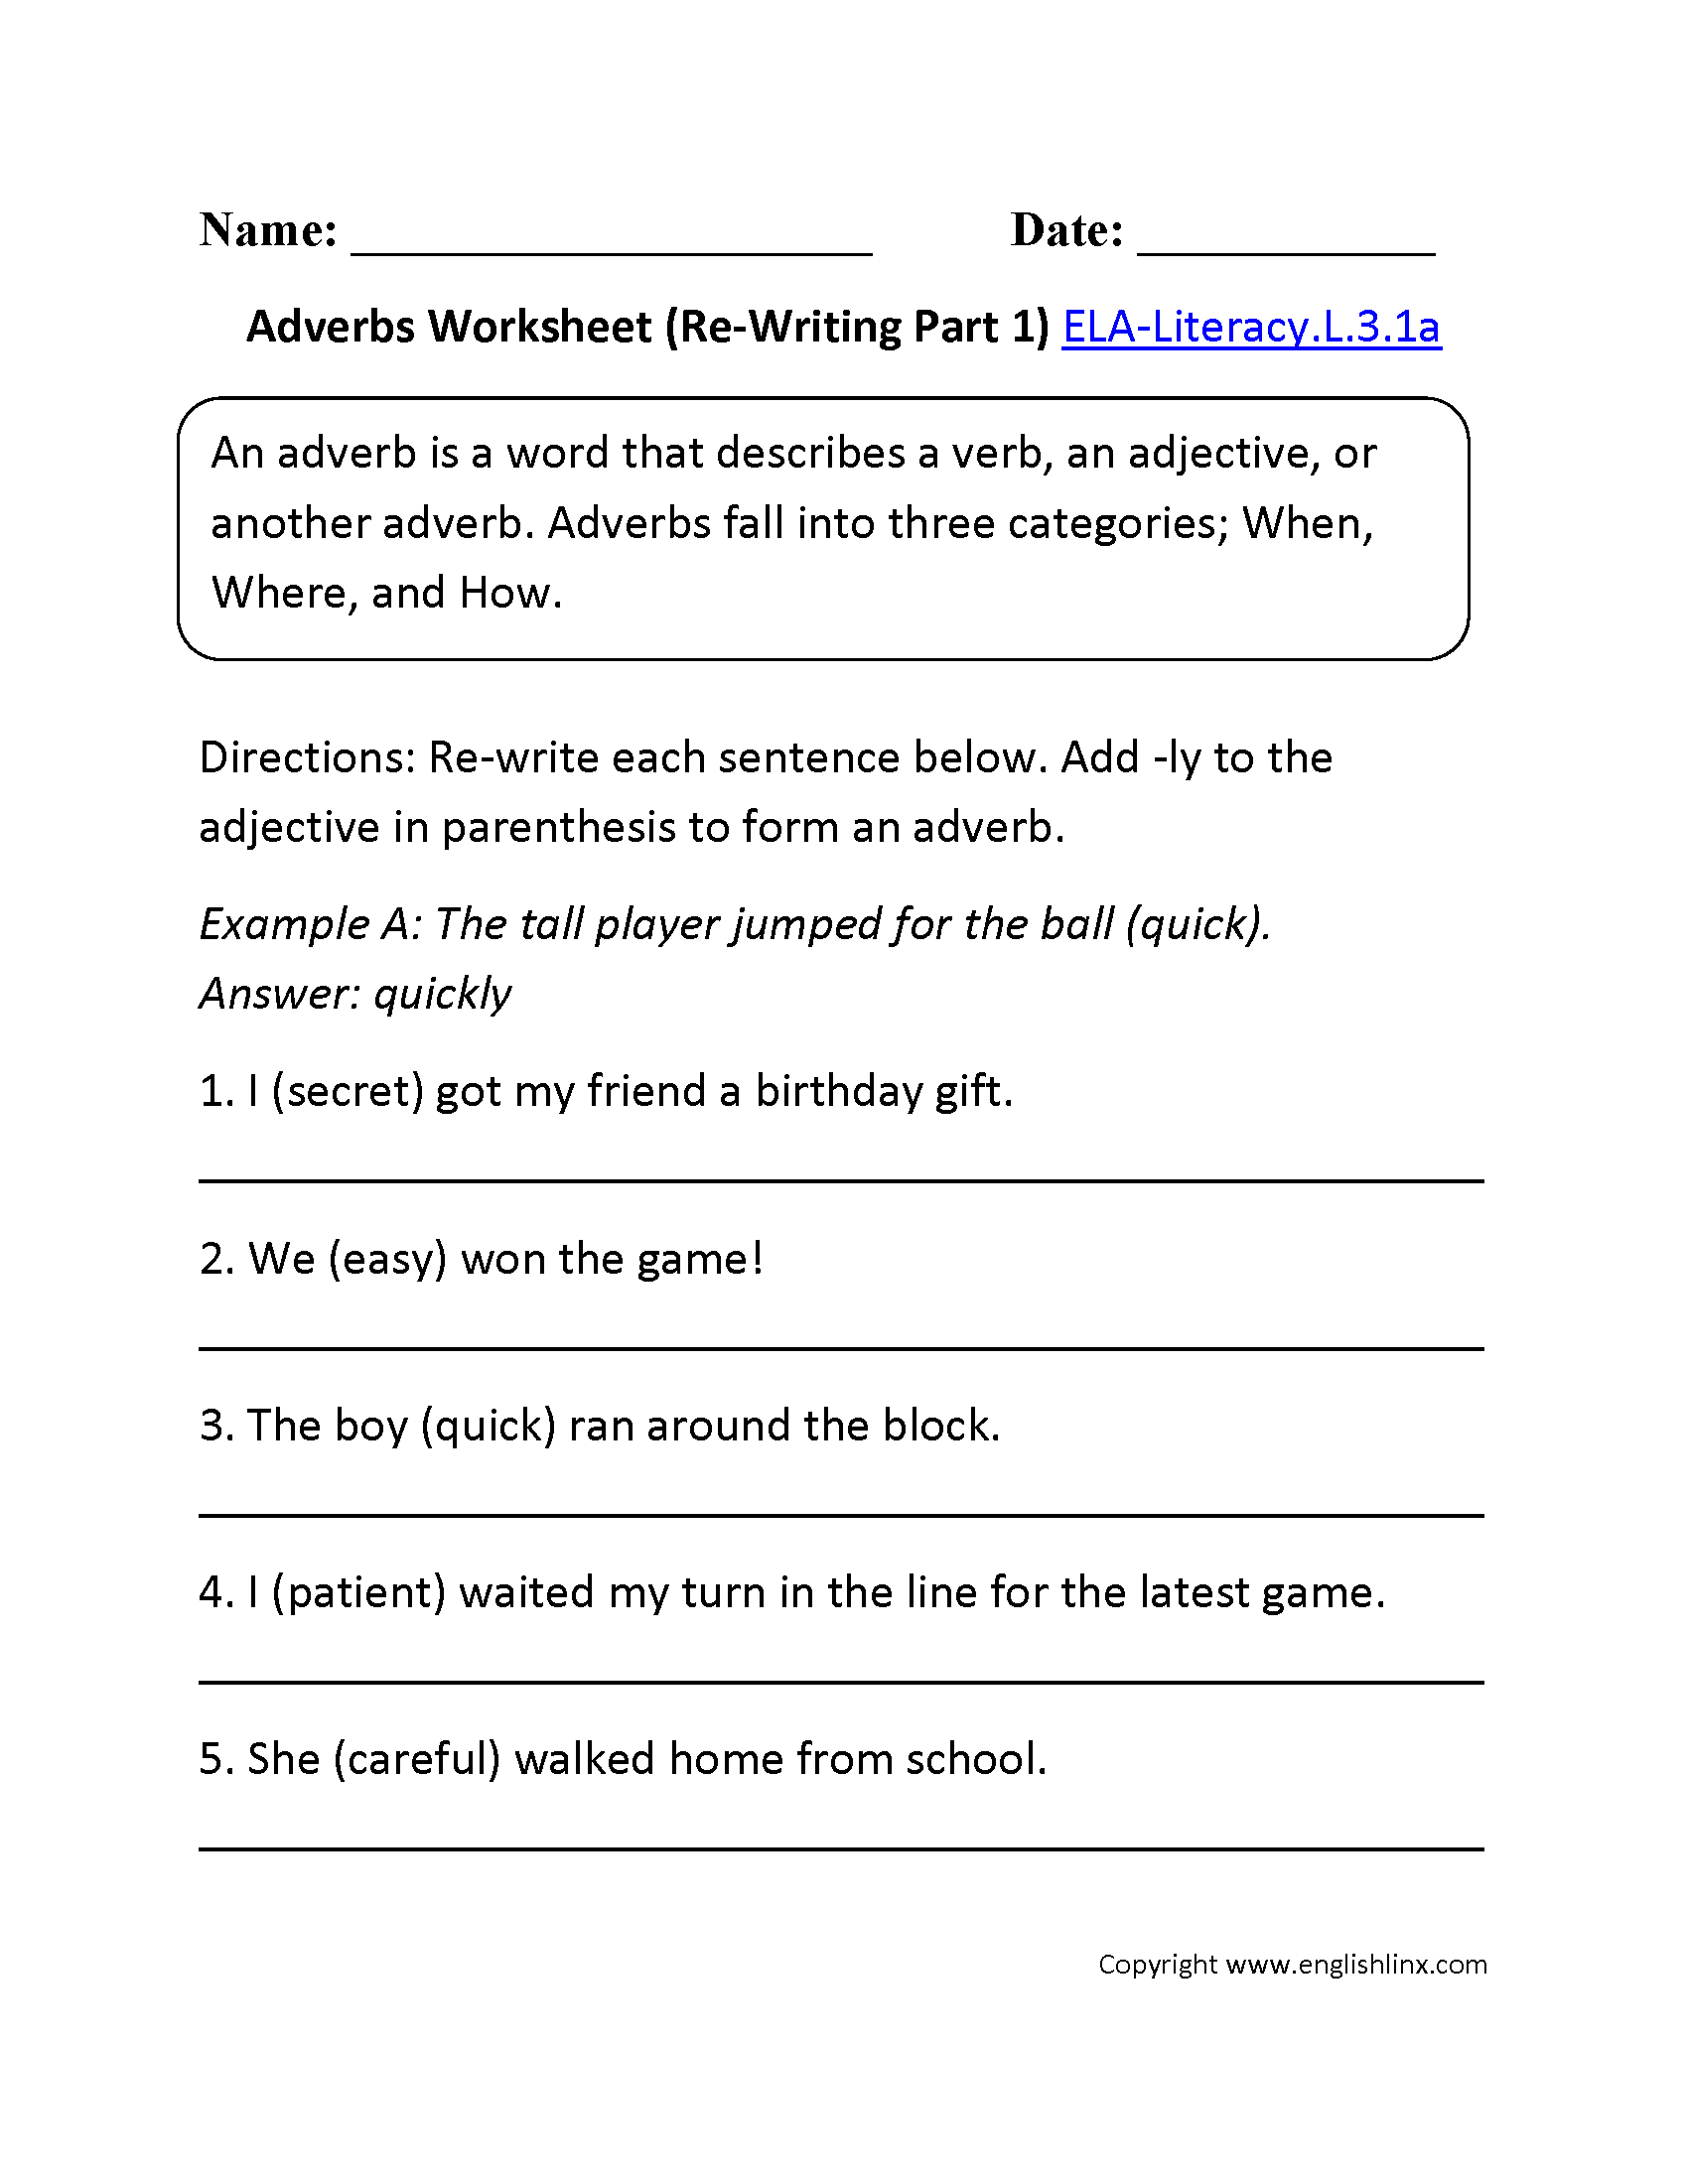 worksheet Comparative Adjectives Worksheets comparative and superlative adjectives worksheet 2 l 3 1 ela literacy 1a language worksheet